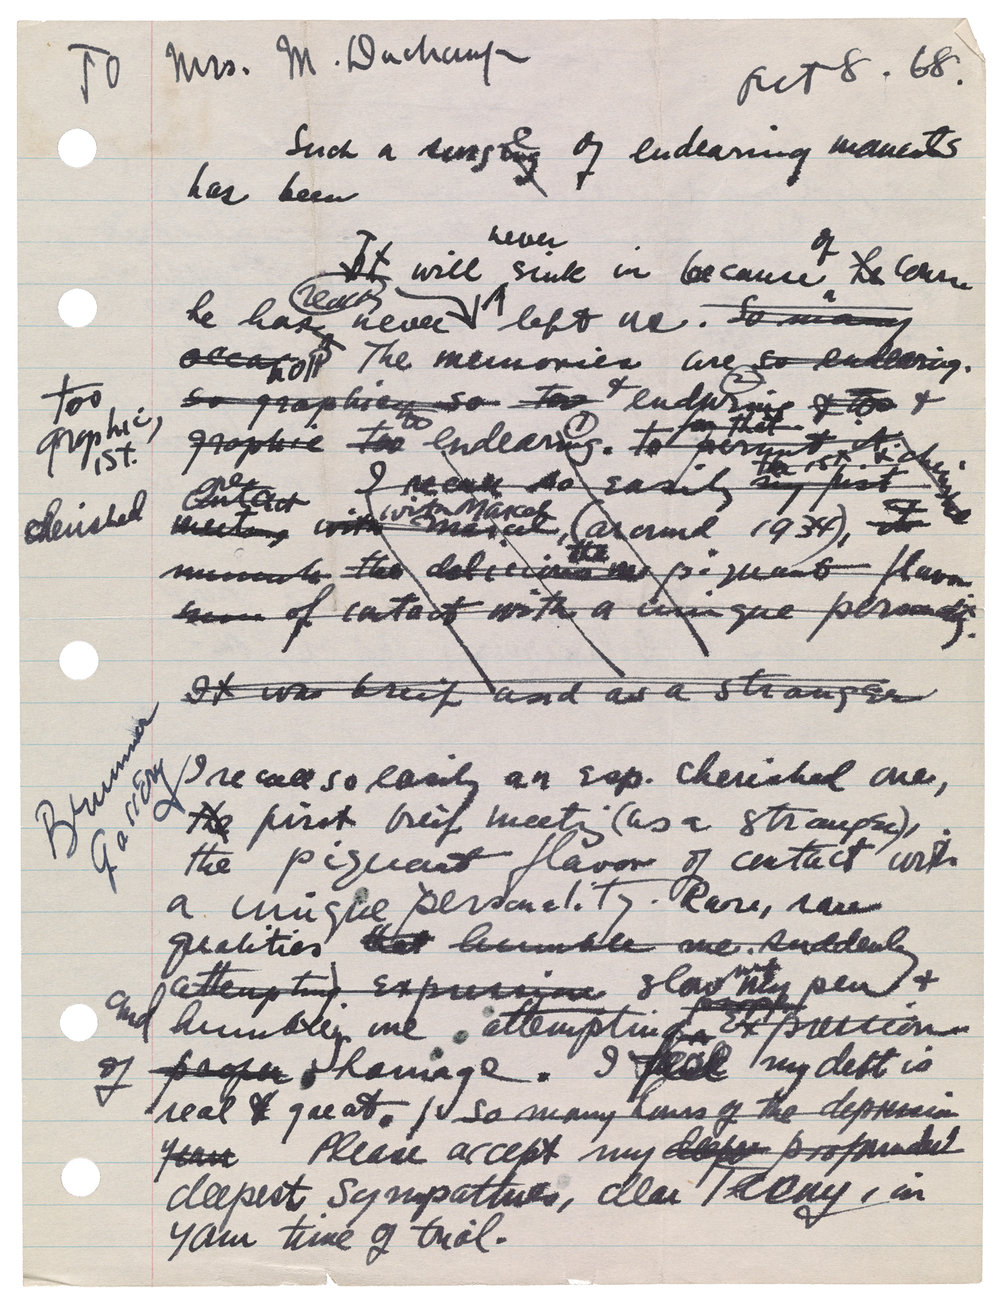 Joseph Cornell (47), draft of letter to Teeny Duchamp, October 8-9, 1968